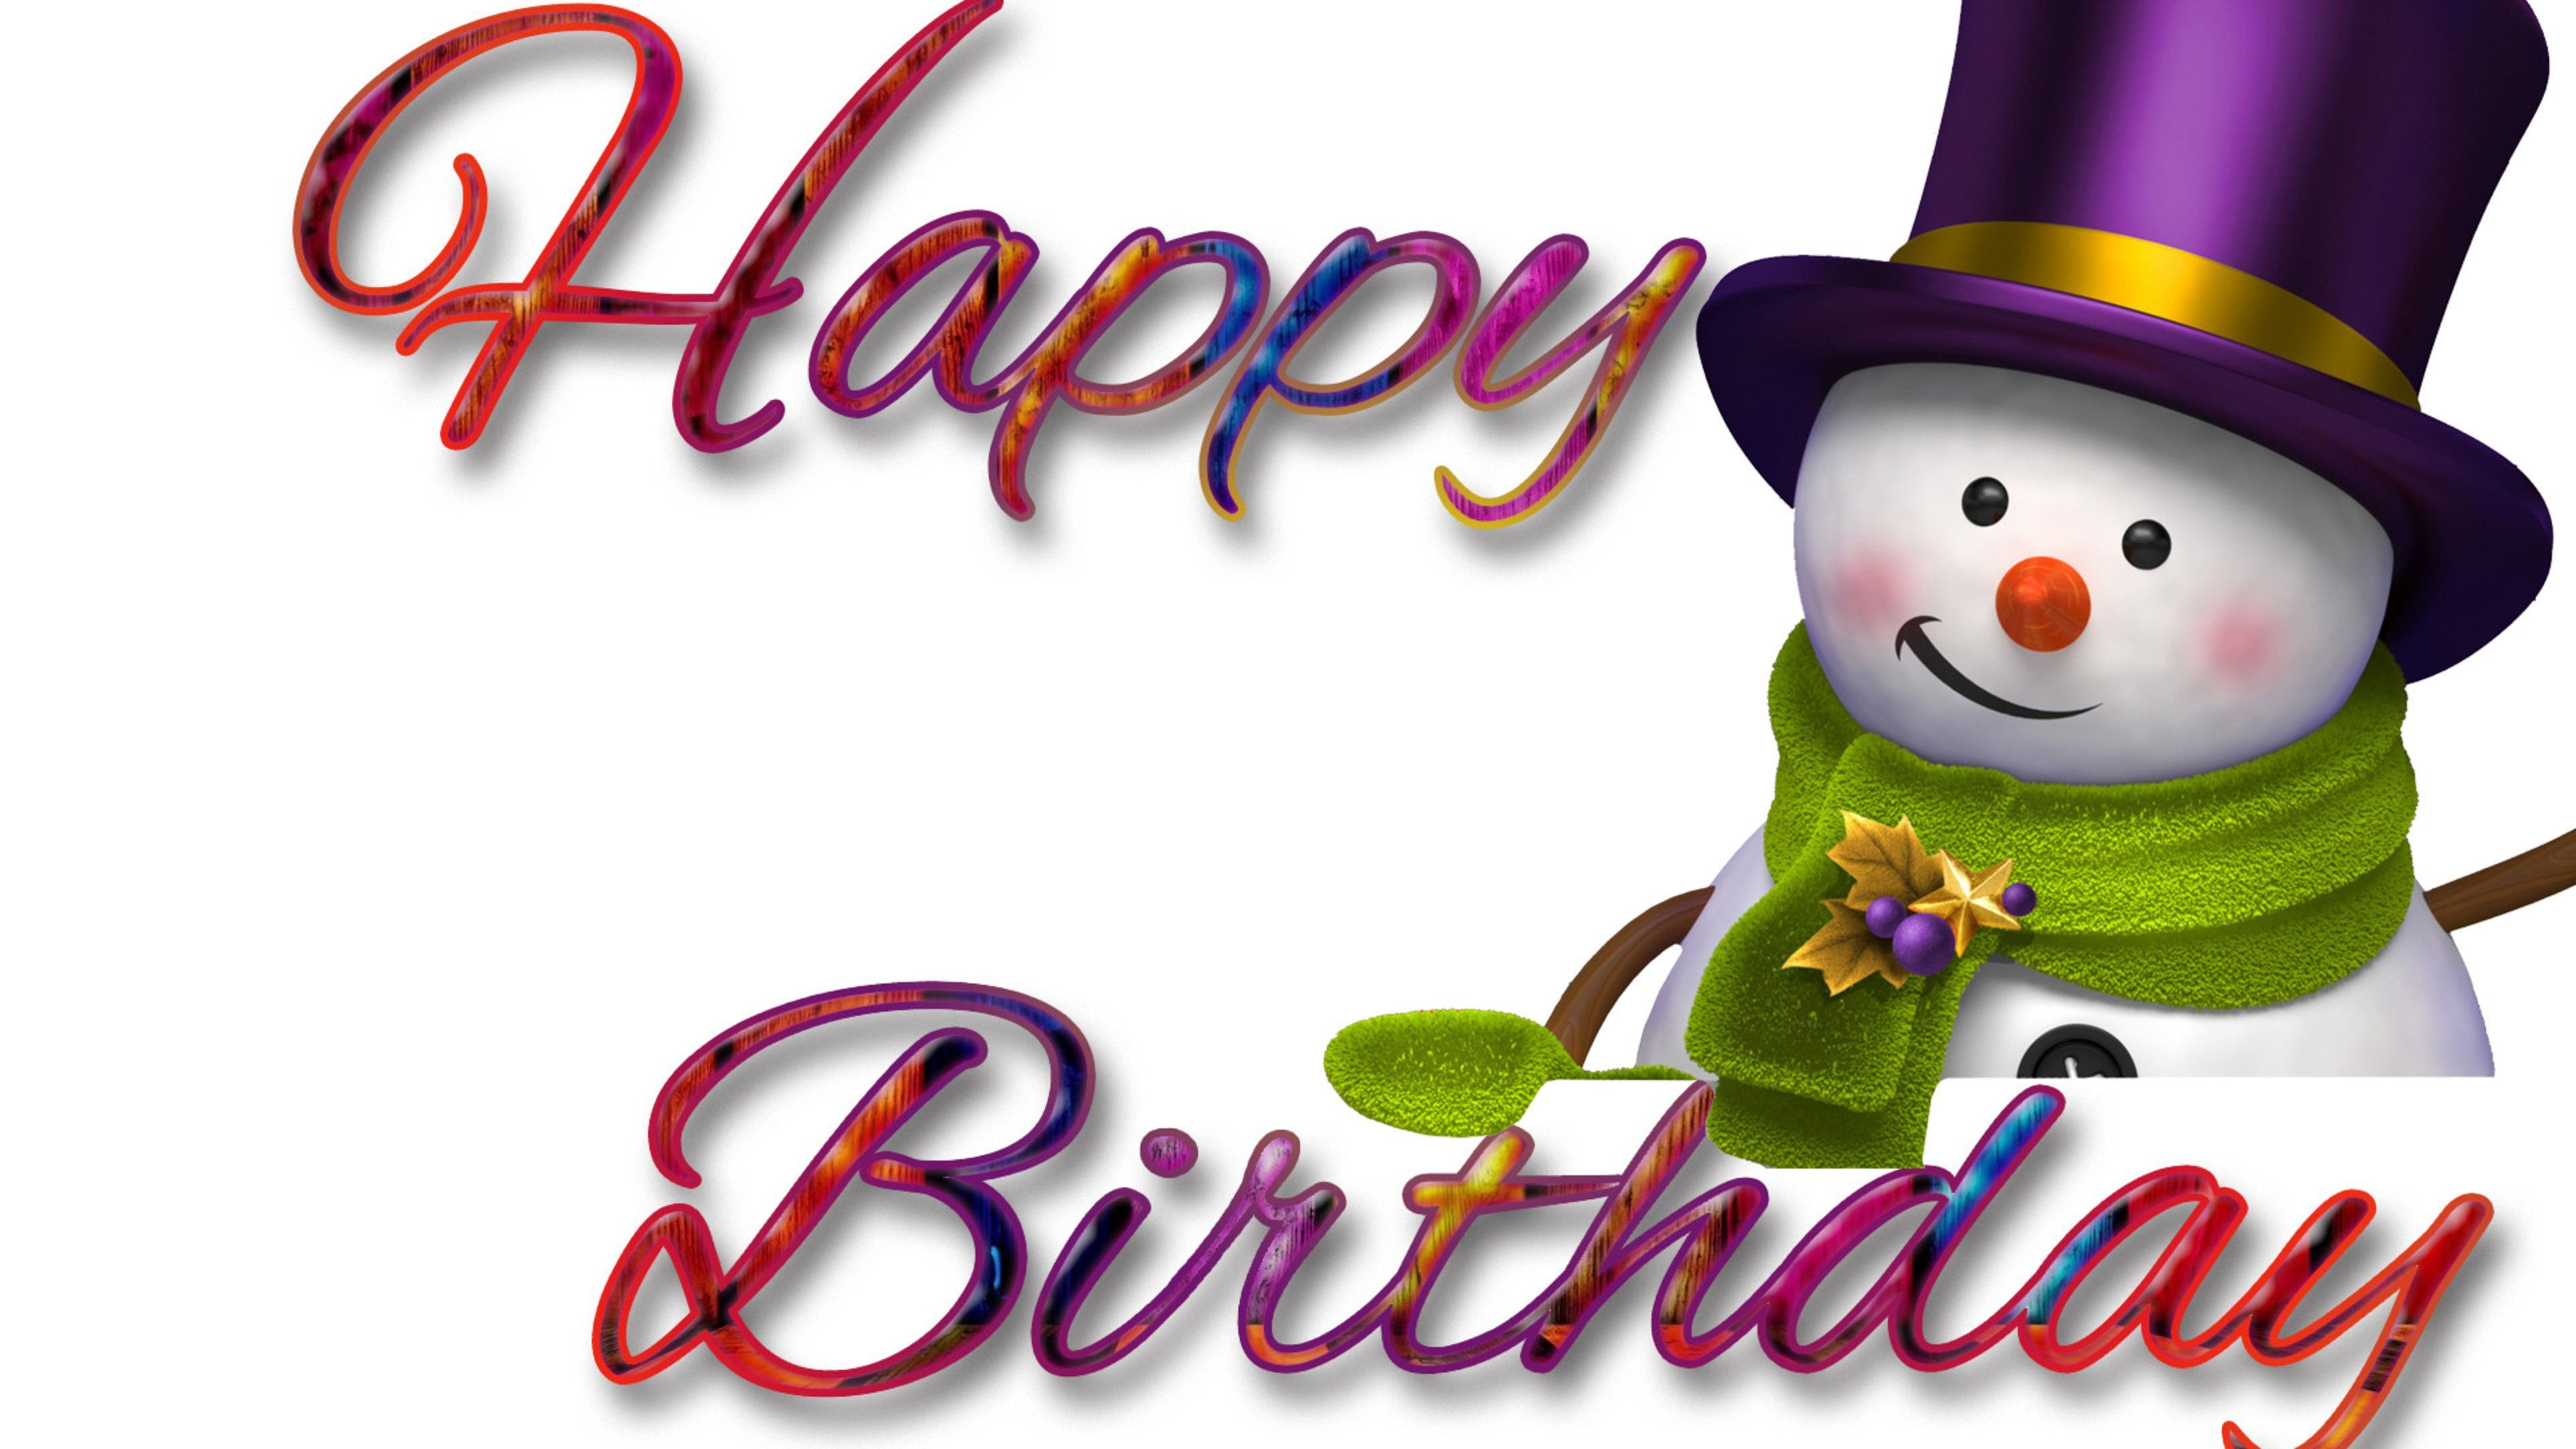 happy birthday hd images download ; happy-birthday-images-36